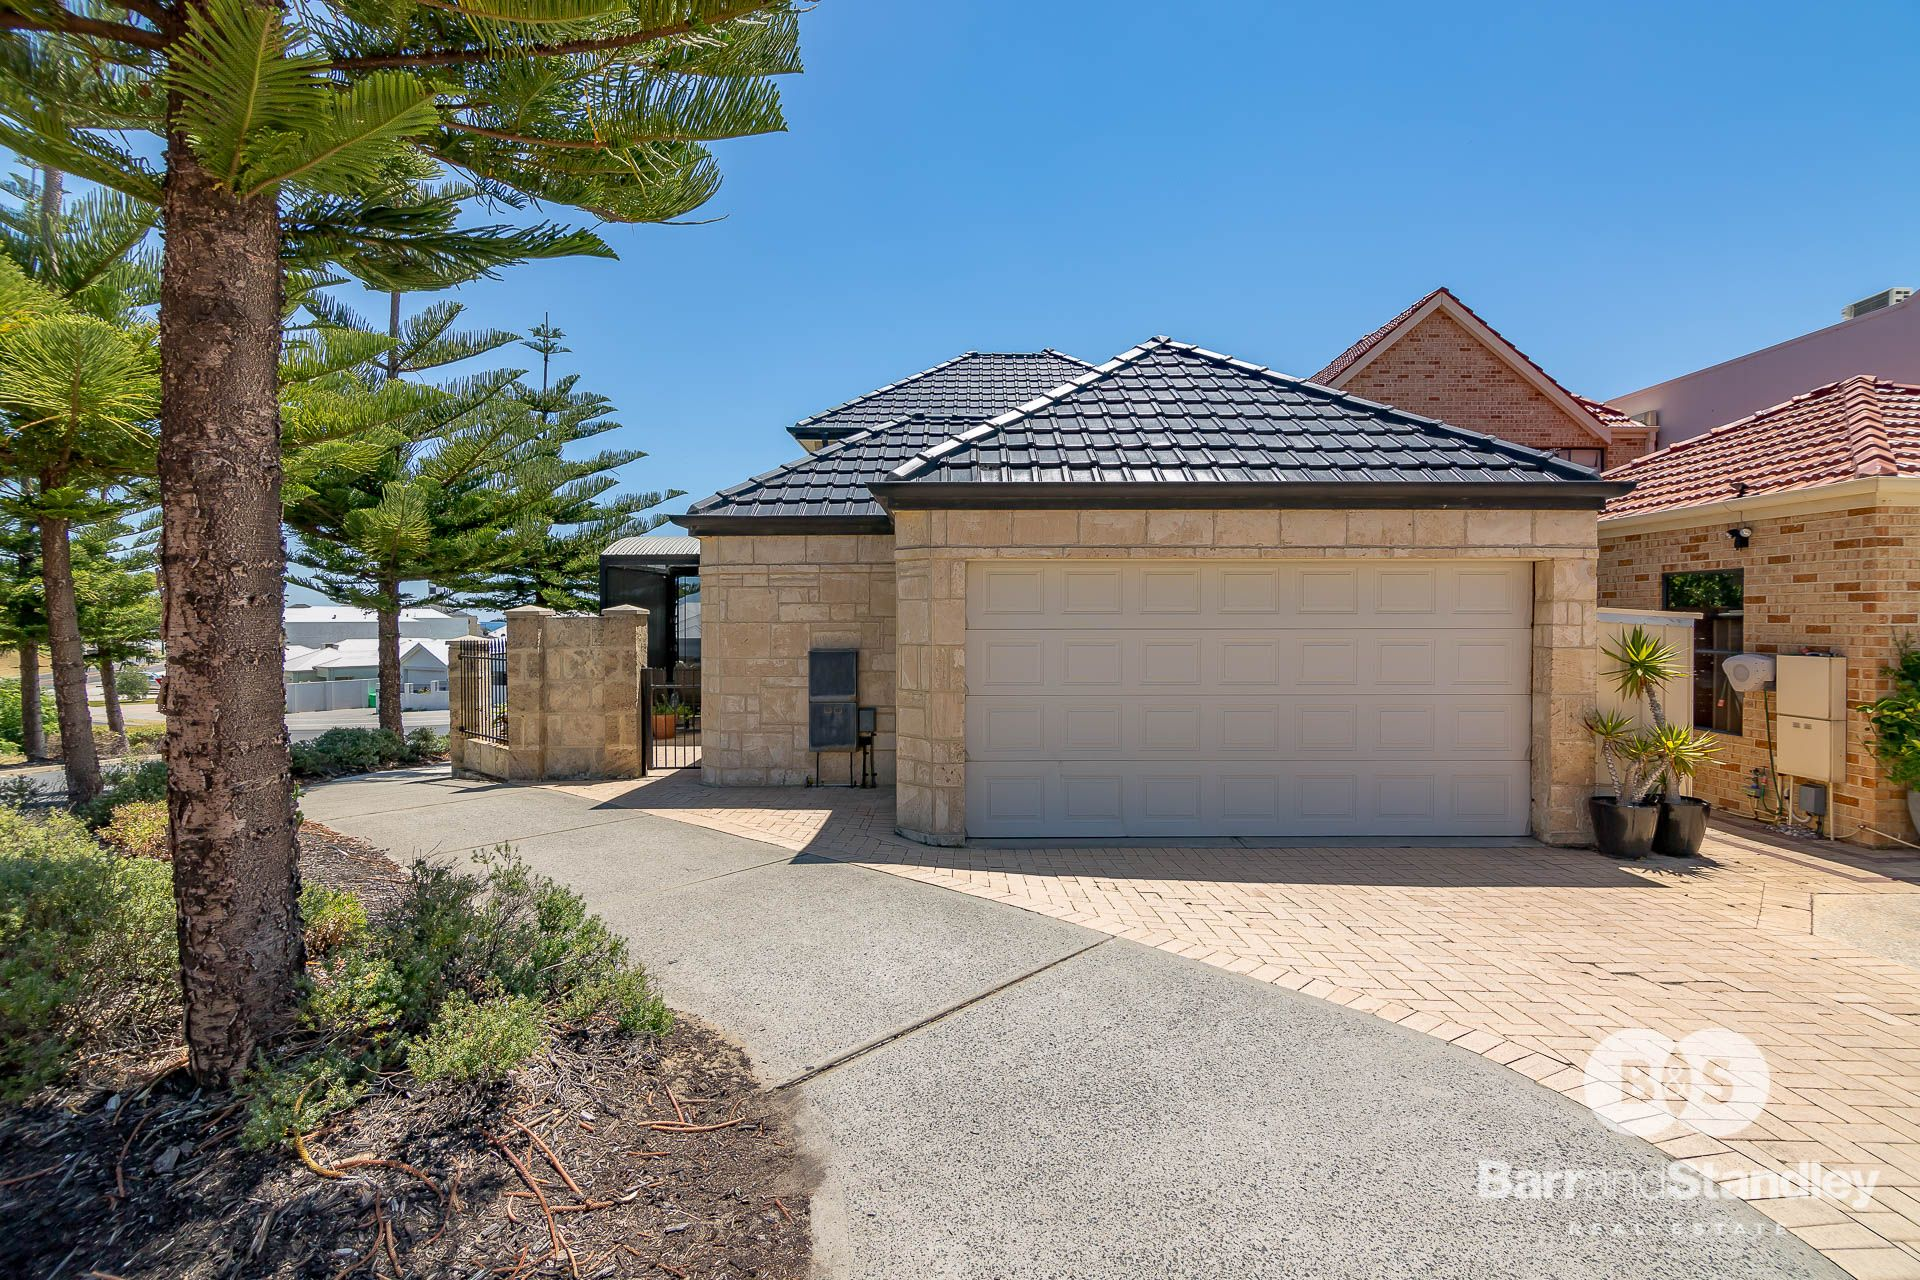 1A Whale View Terrace, Bunbury